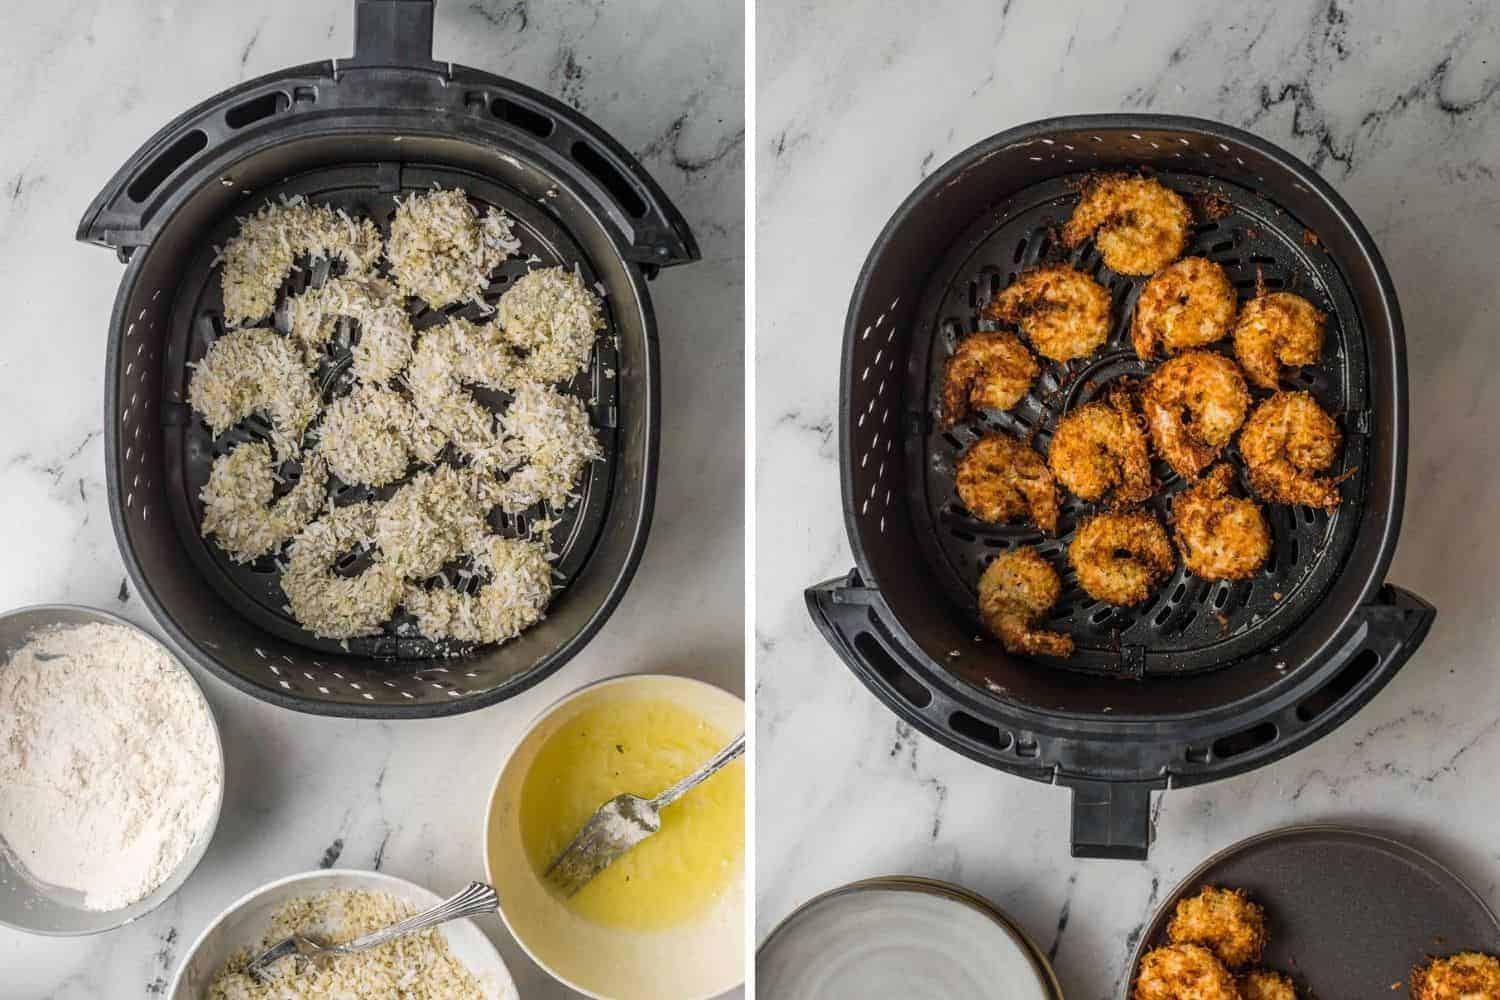 Shrimp in air fryer, uncooked on left, cooked on right side.